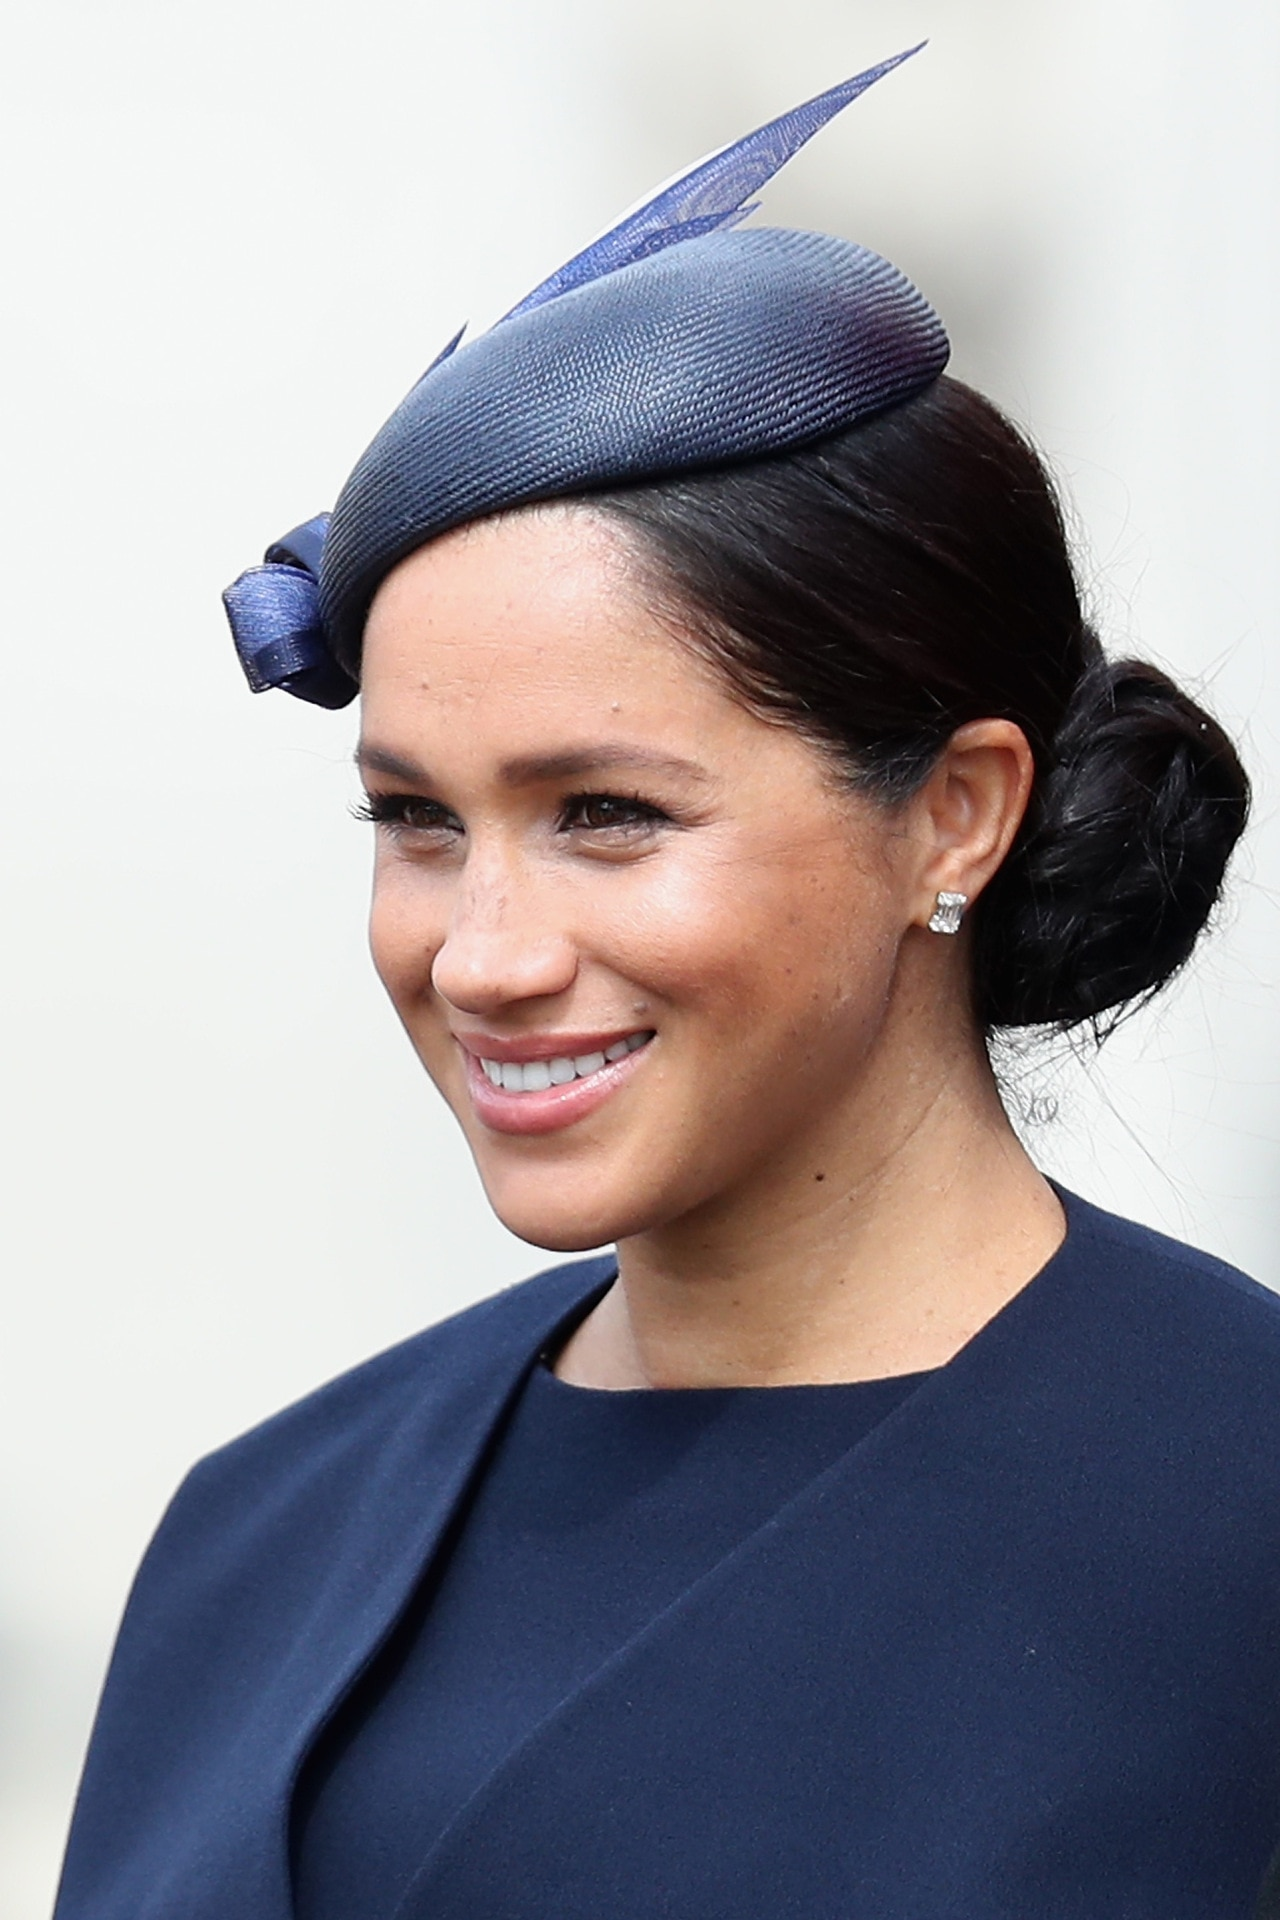 Meghan Markle's postpartum fitness routine involves walking and yoga